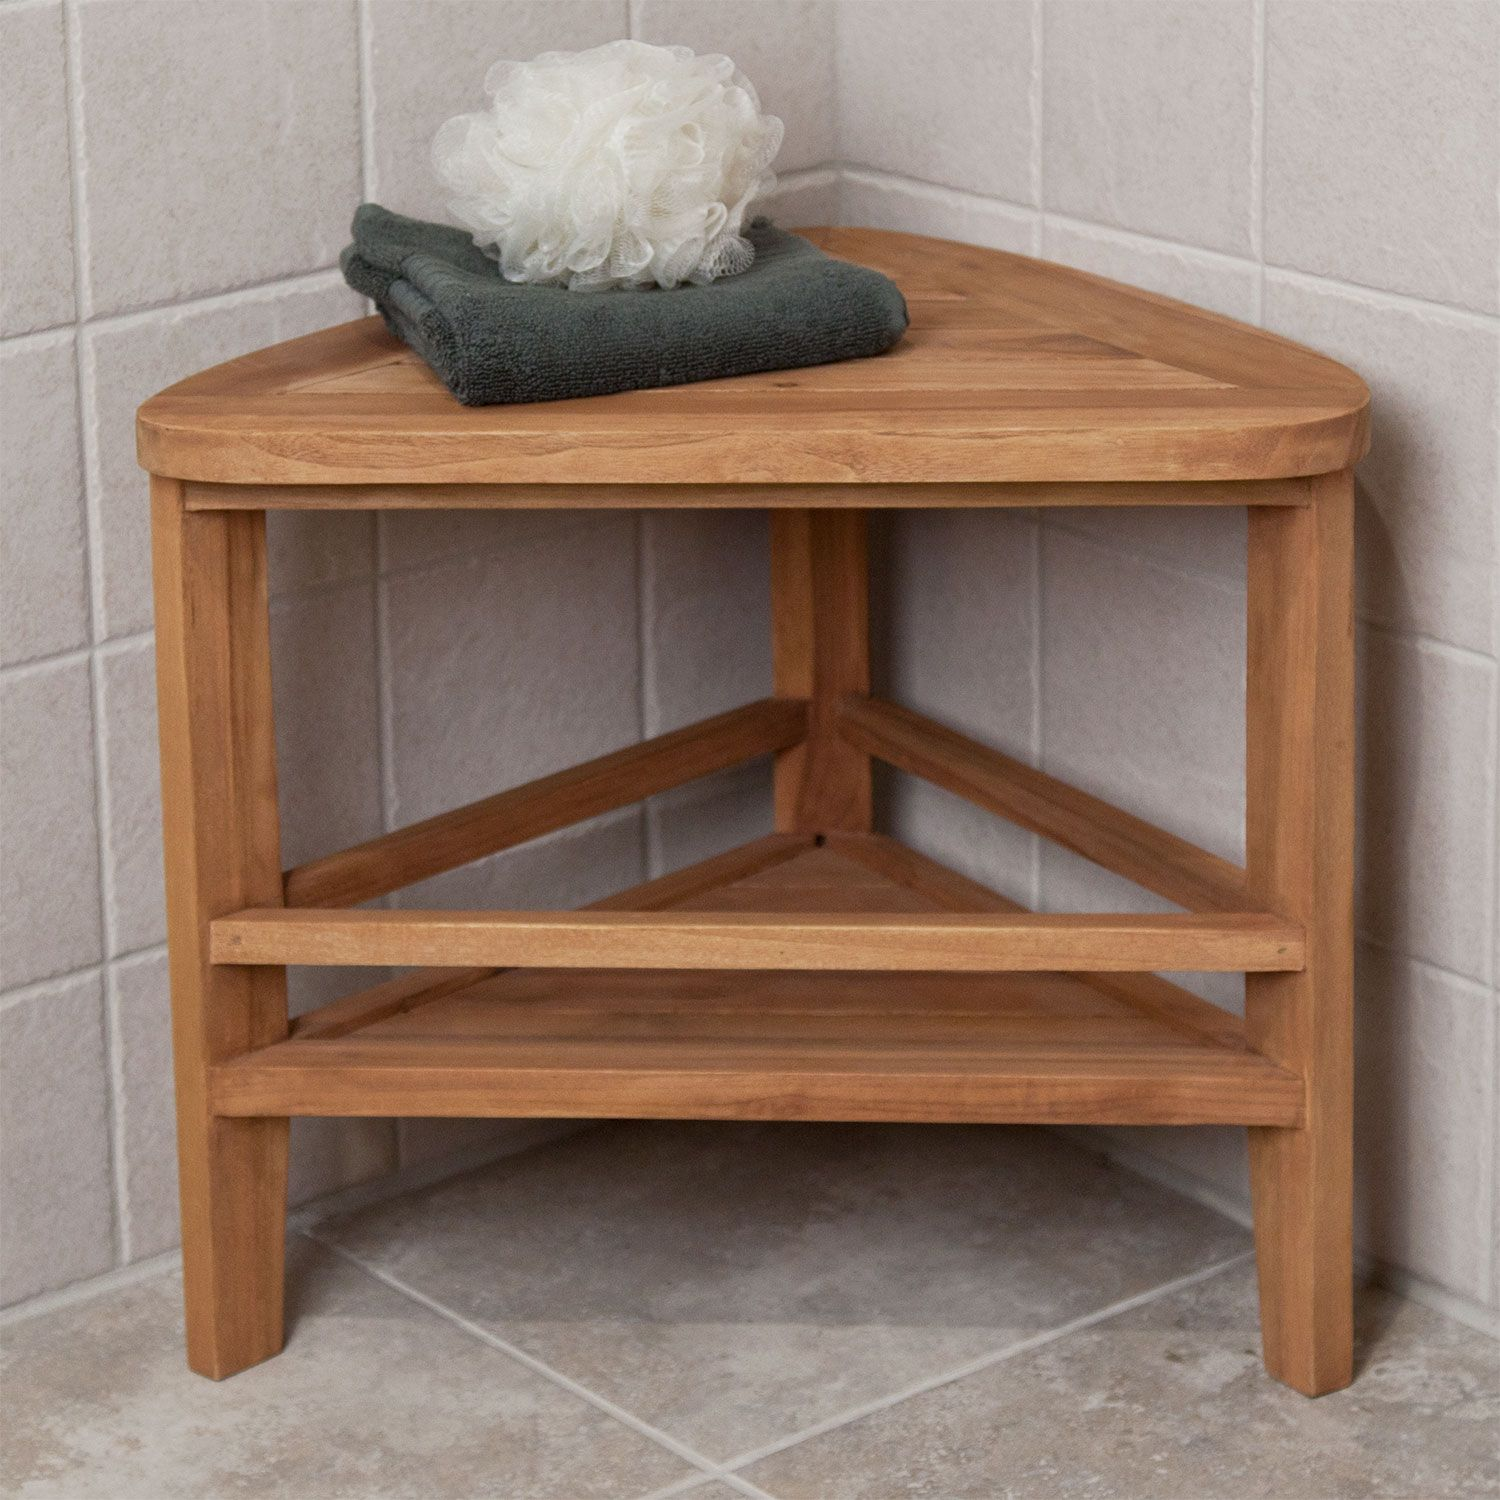 teak bathroom stools. Teak Corner Shower Stool Bathroom Stools E